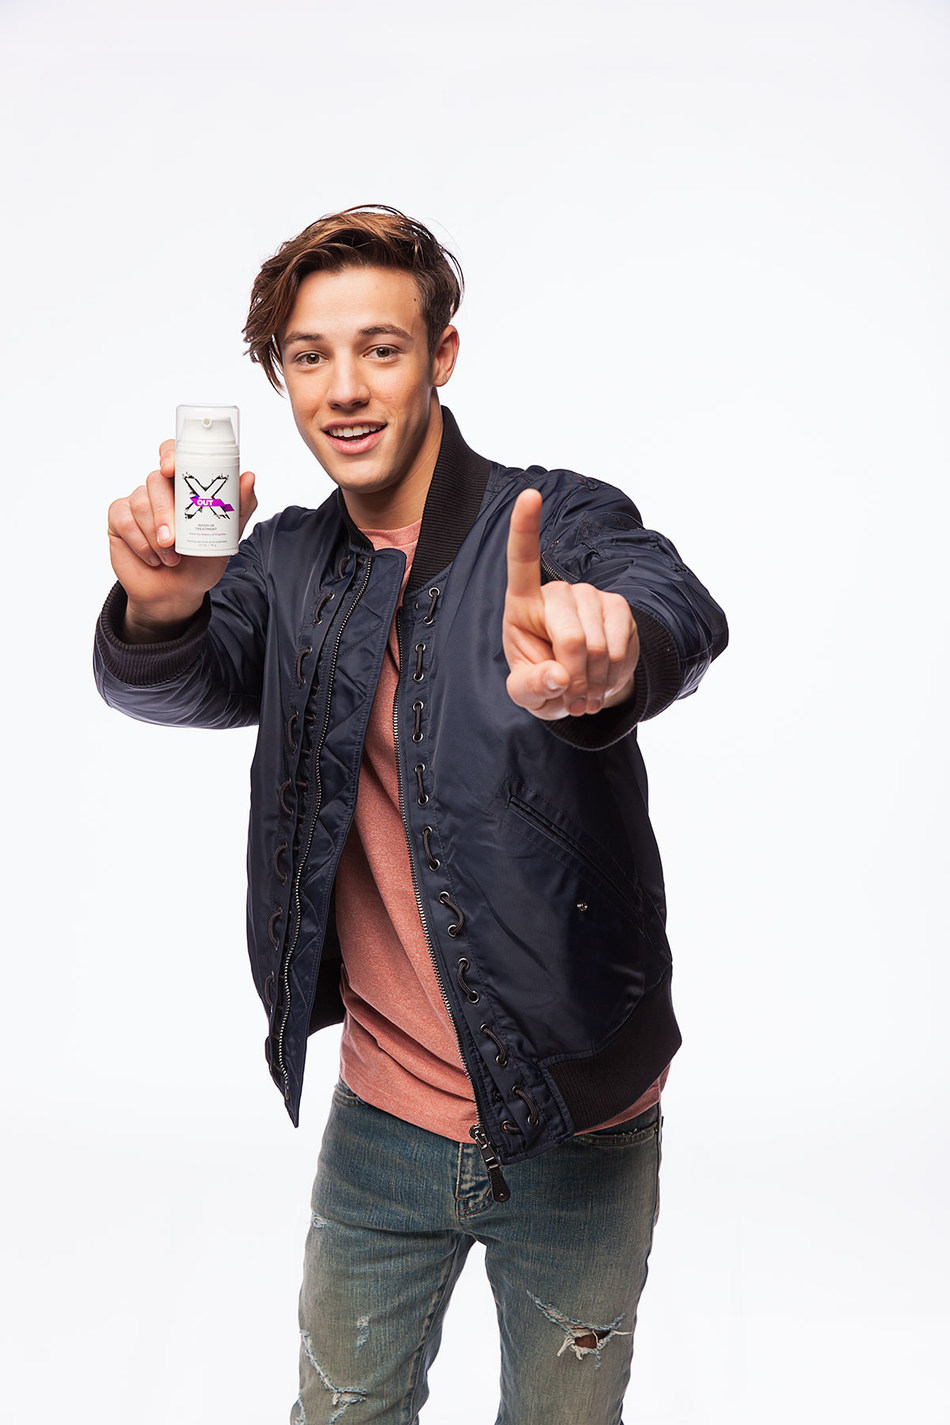 X OUT announces social media star Cameron Dallas as newest spokesperson